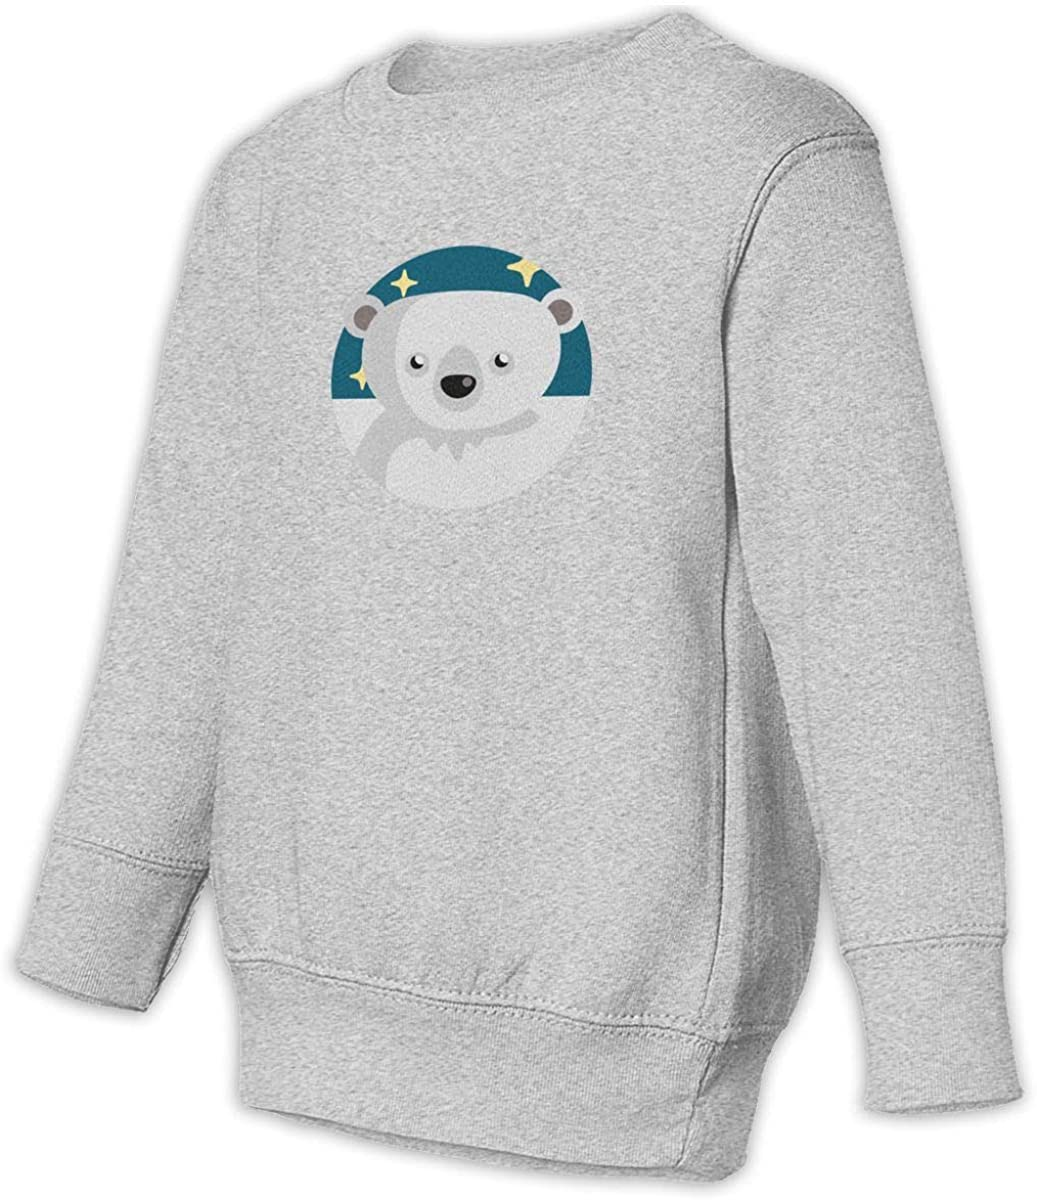 Fleece Pull Over Sweatshirt for Boys Girls Kids Youth Bear-1 Unisex Toddler Hoodies